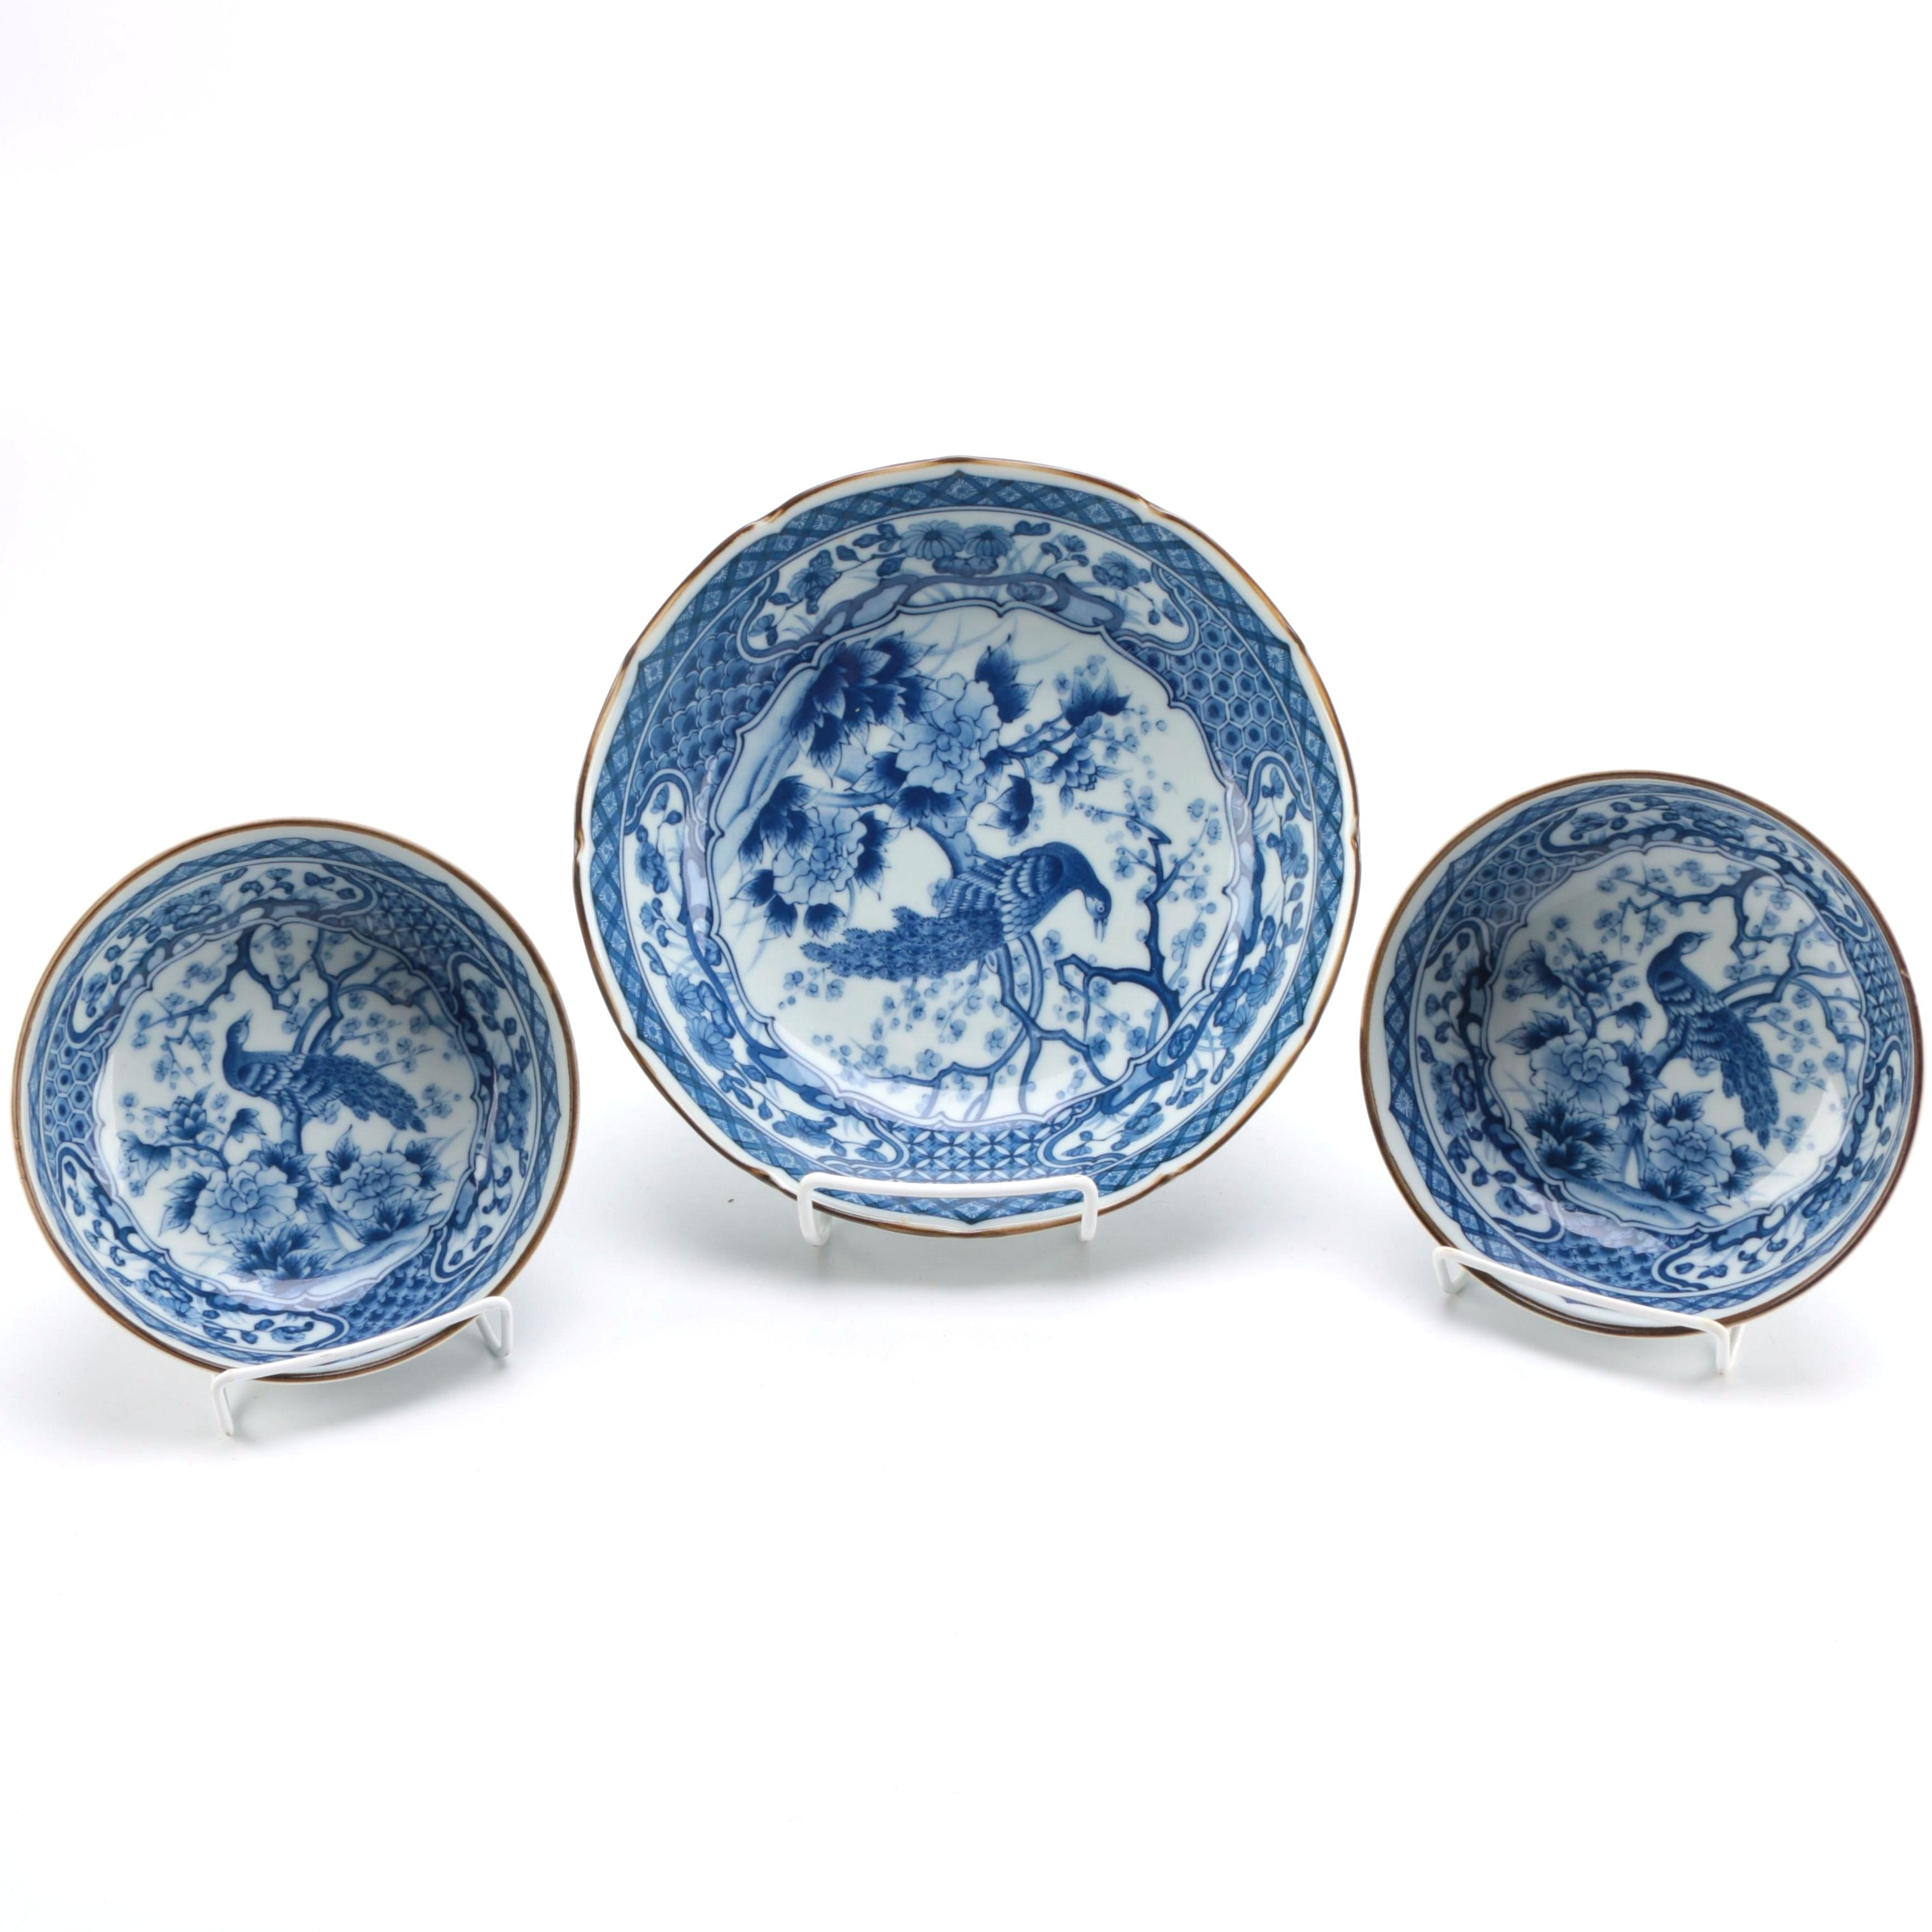 Japanese Blue and White Peacock Bowl Set